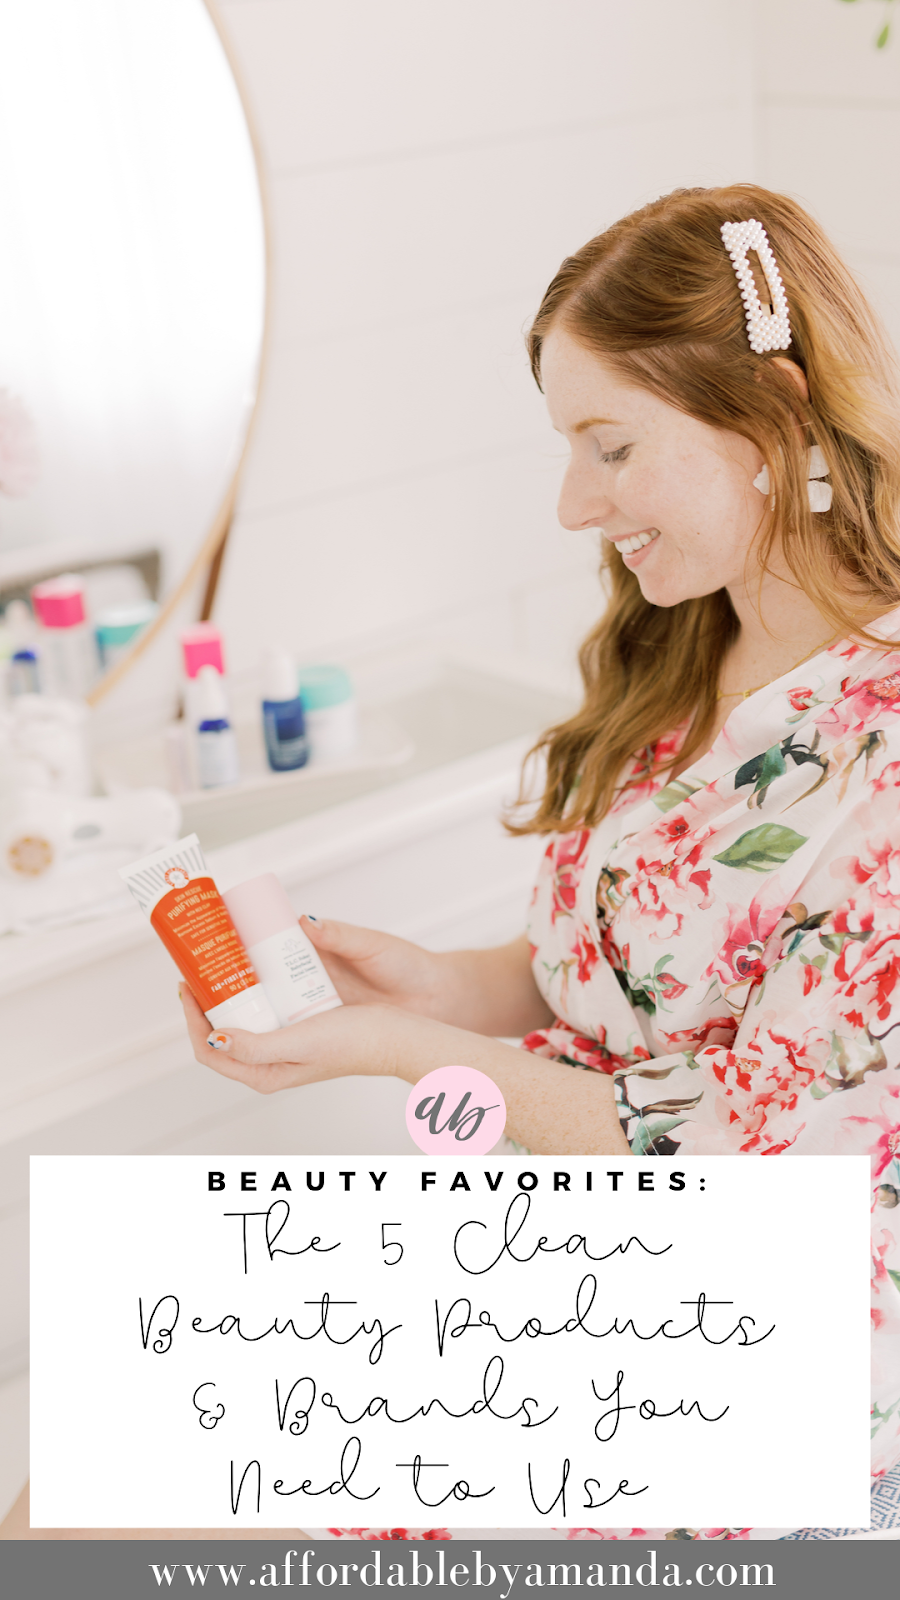 The 5 Clean Beauty Products & Brands You Need to Use